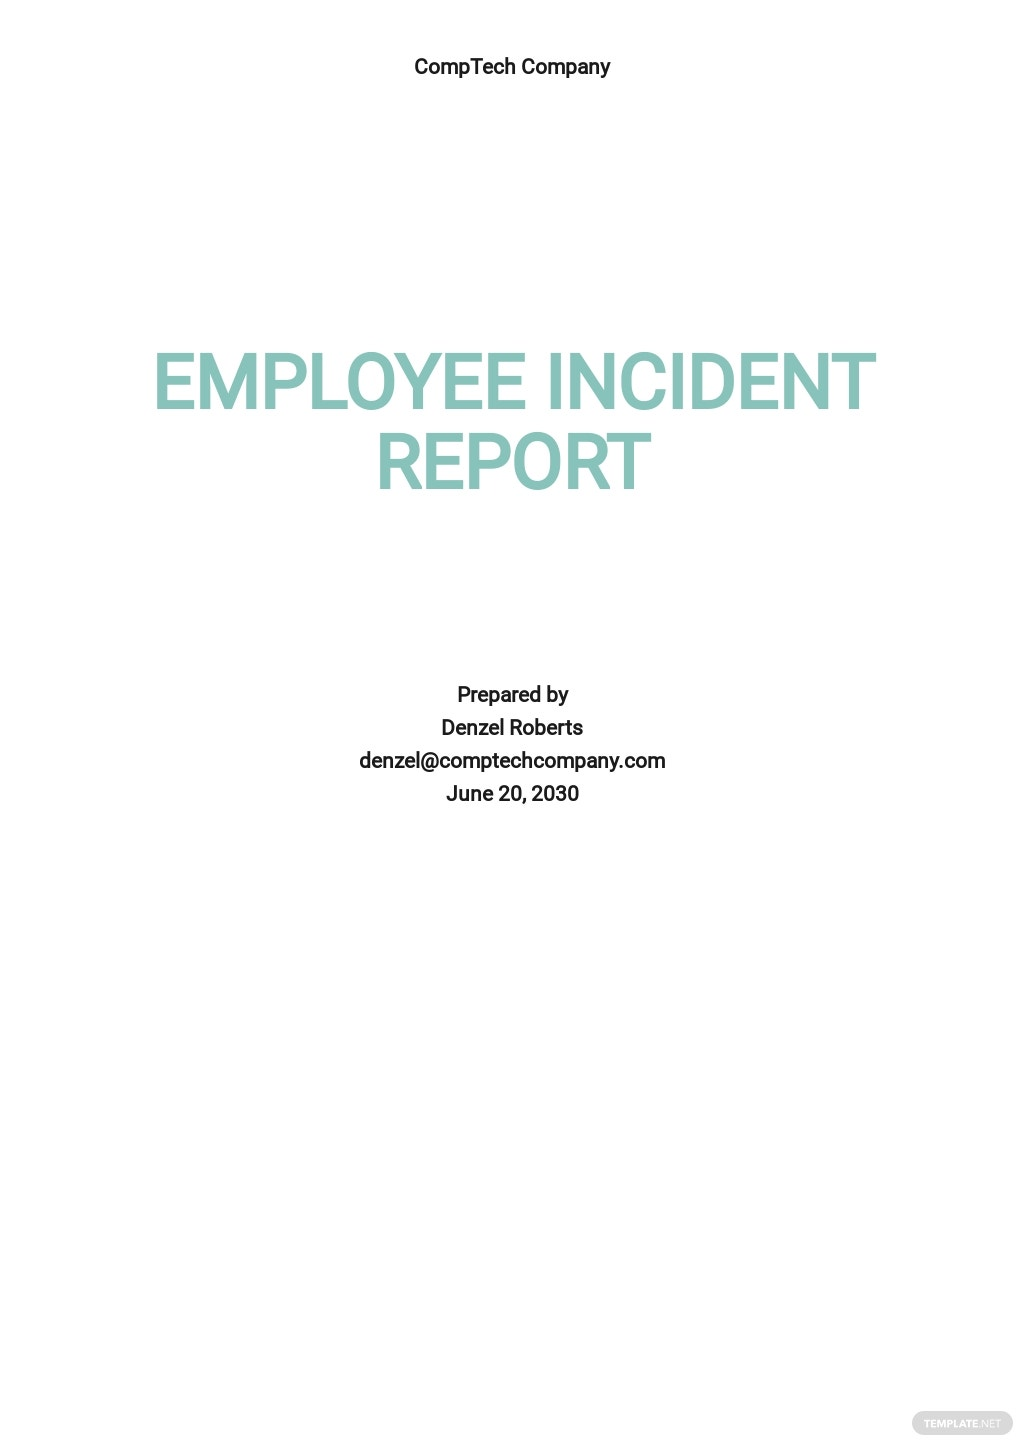 Free Employee Incident Report Template.jpe